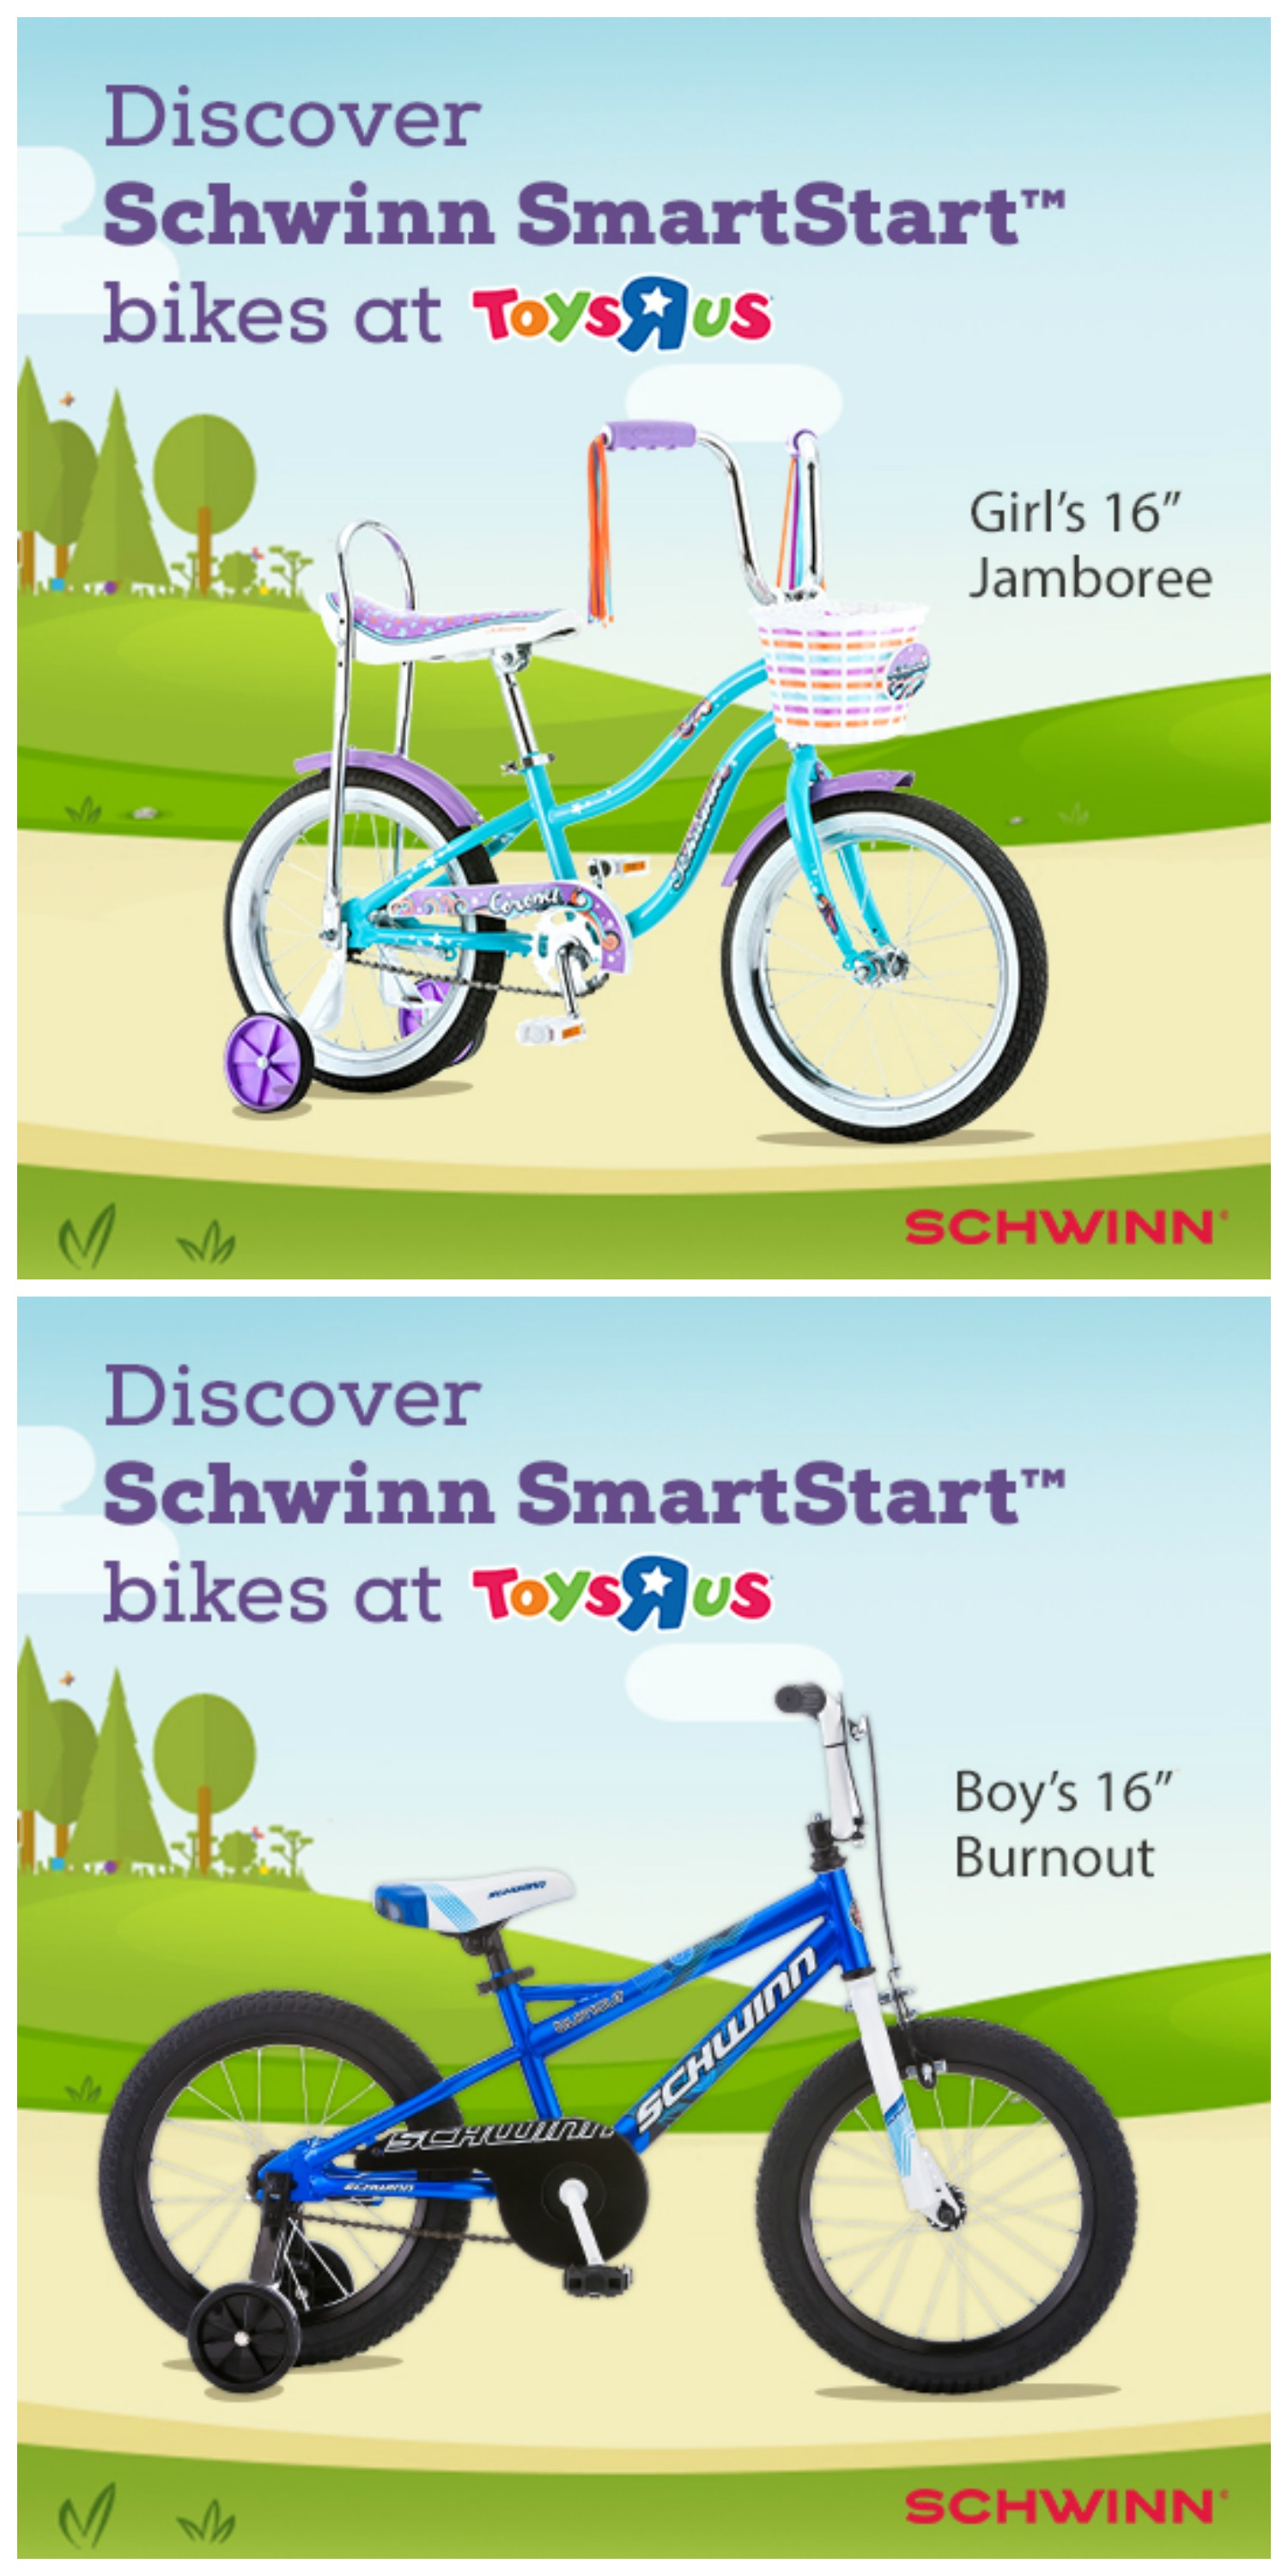 Schwinn SmartStart bikes are perfect for new riders! Available at Toys R Us! #SchwinnSmartStart